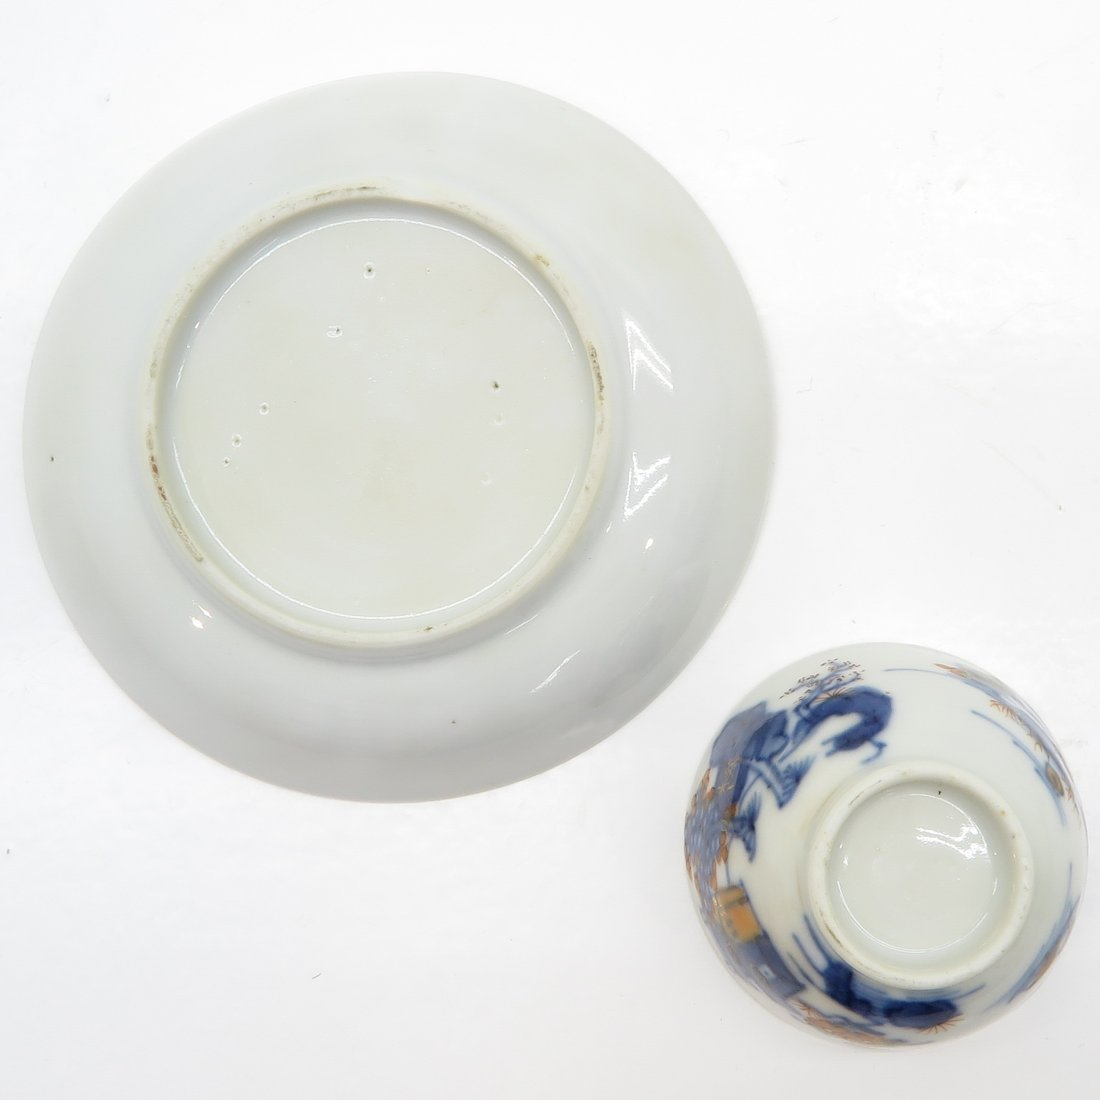 18th Century China Porcelain Cup and Saucer - 6